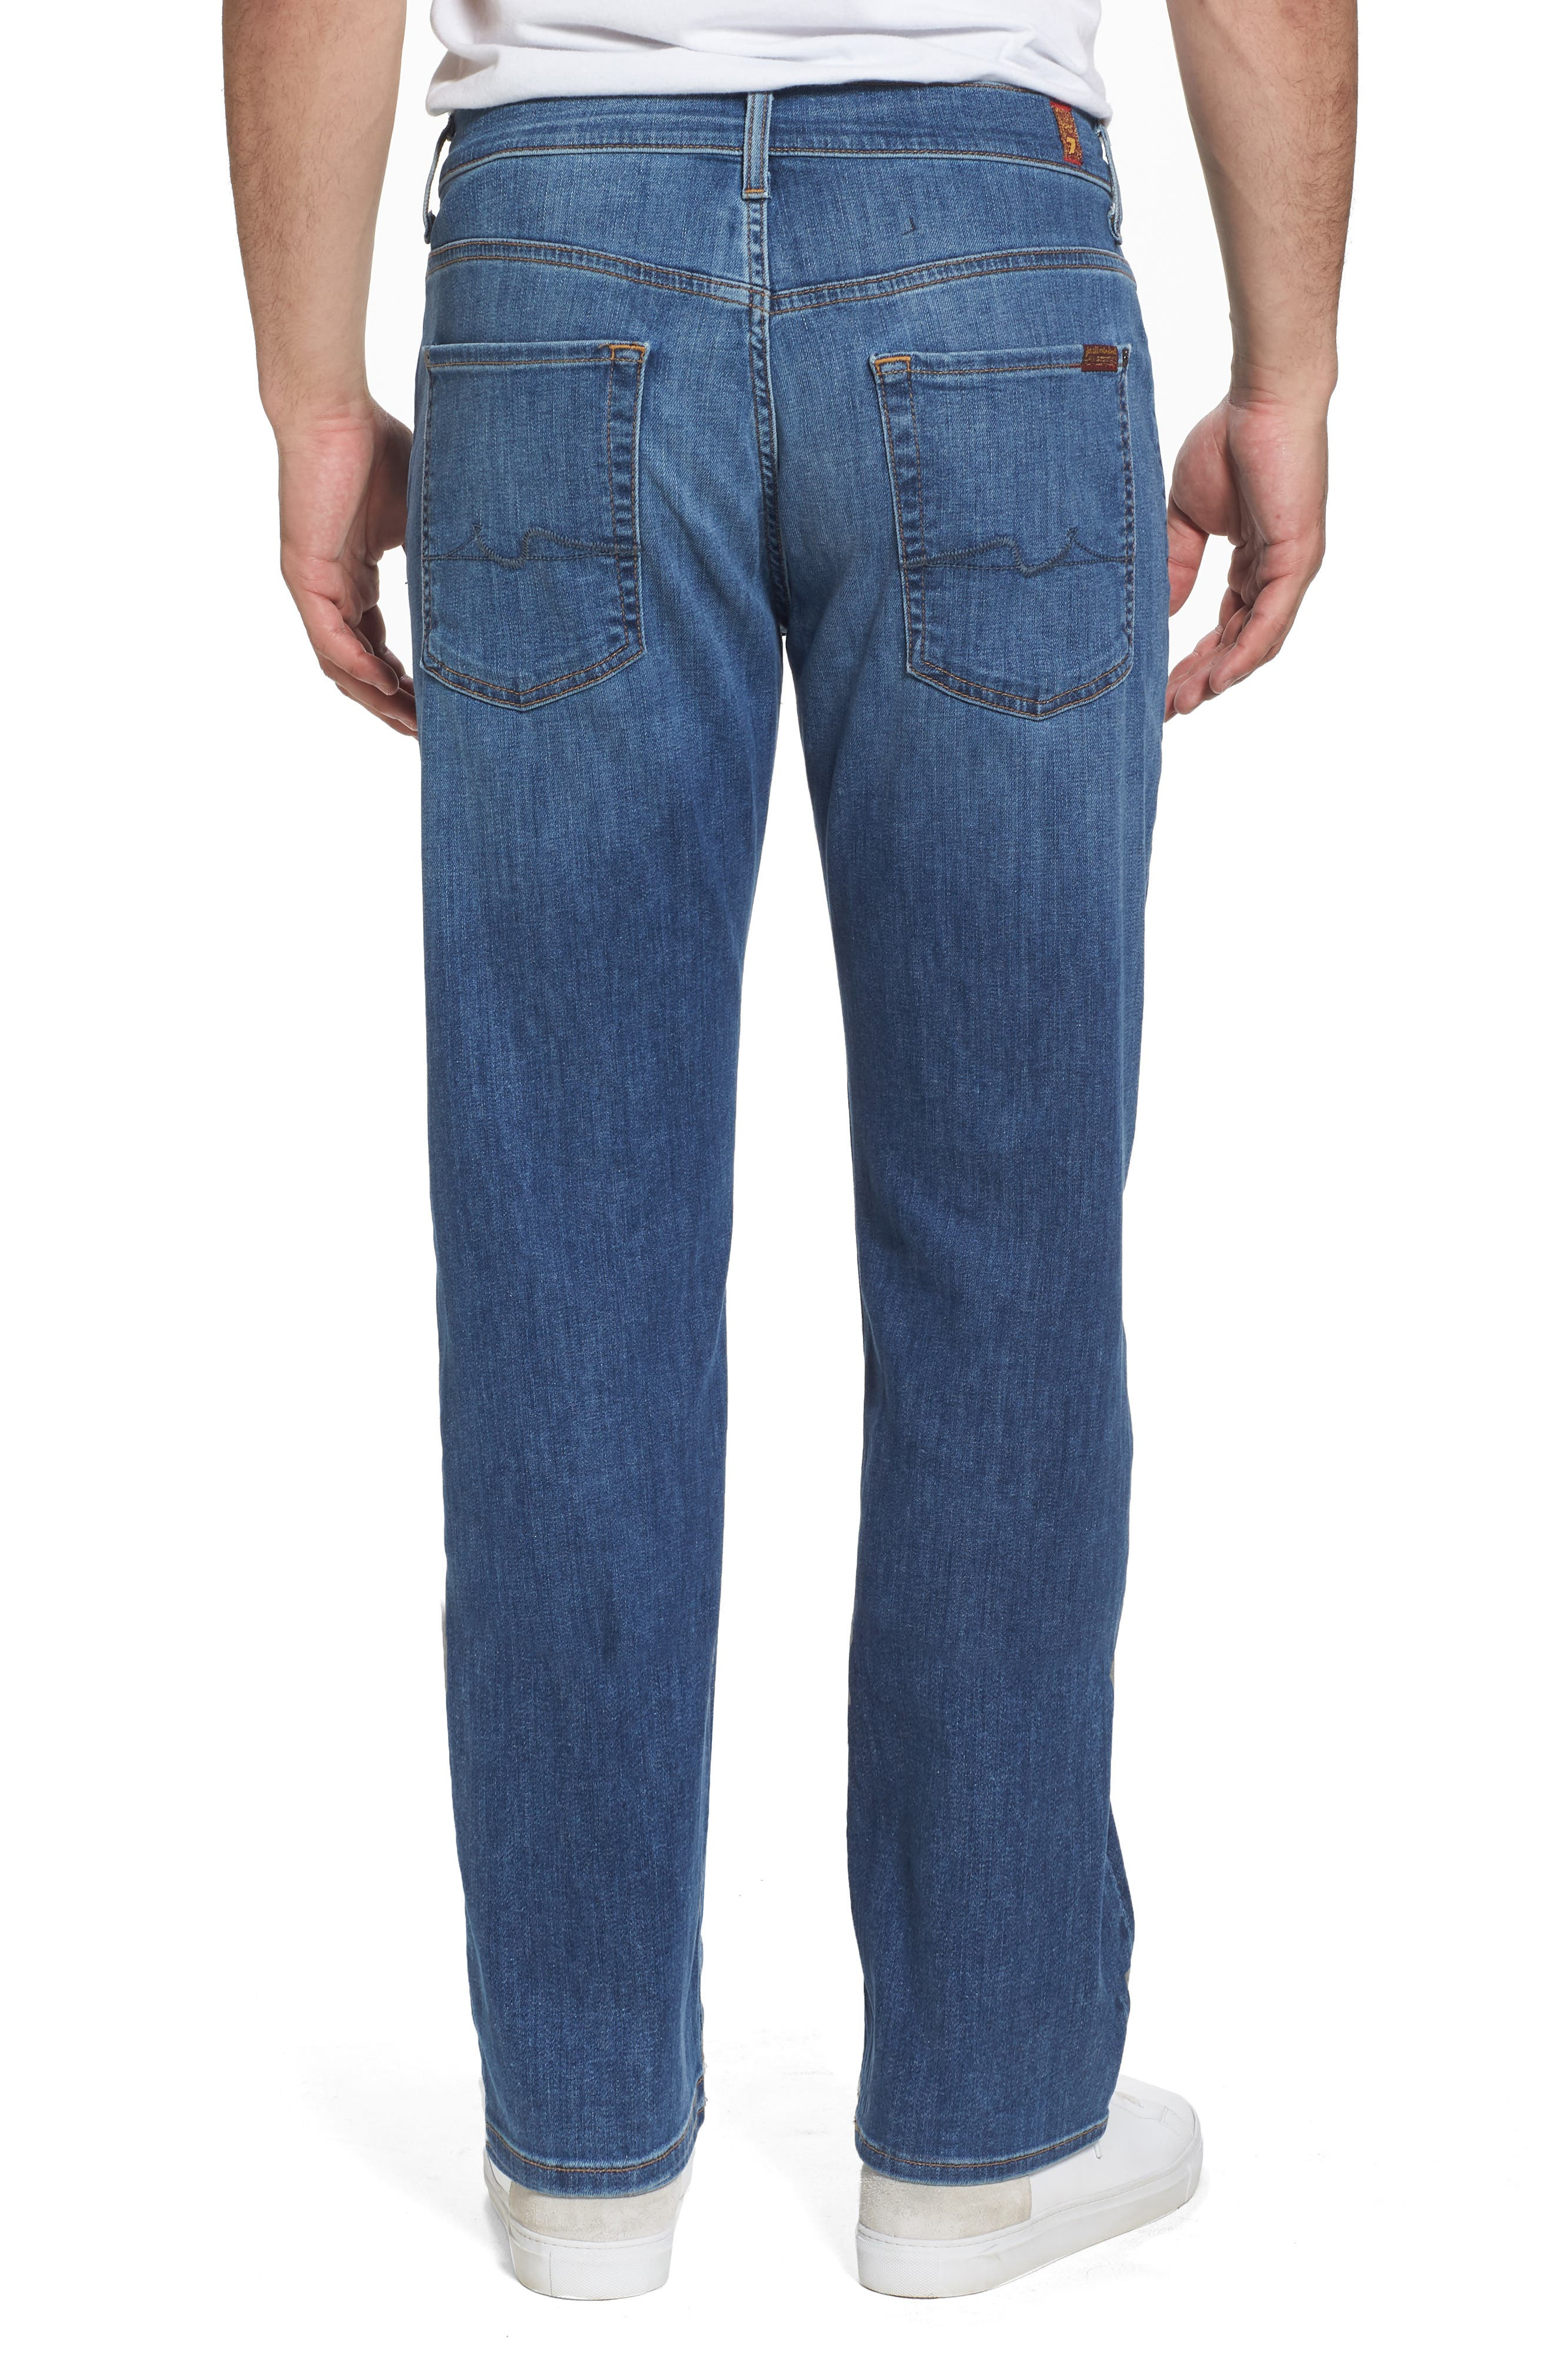 Austyn Relaxed Fit Jeans,                             Alternate thumbnail 2, color,                             Rain Shadow